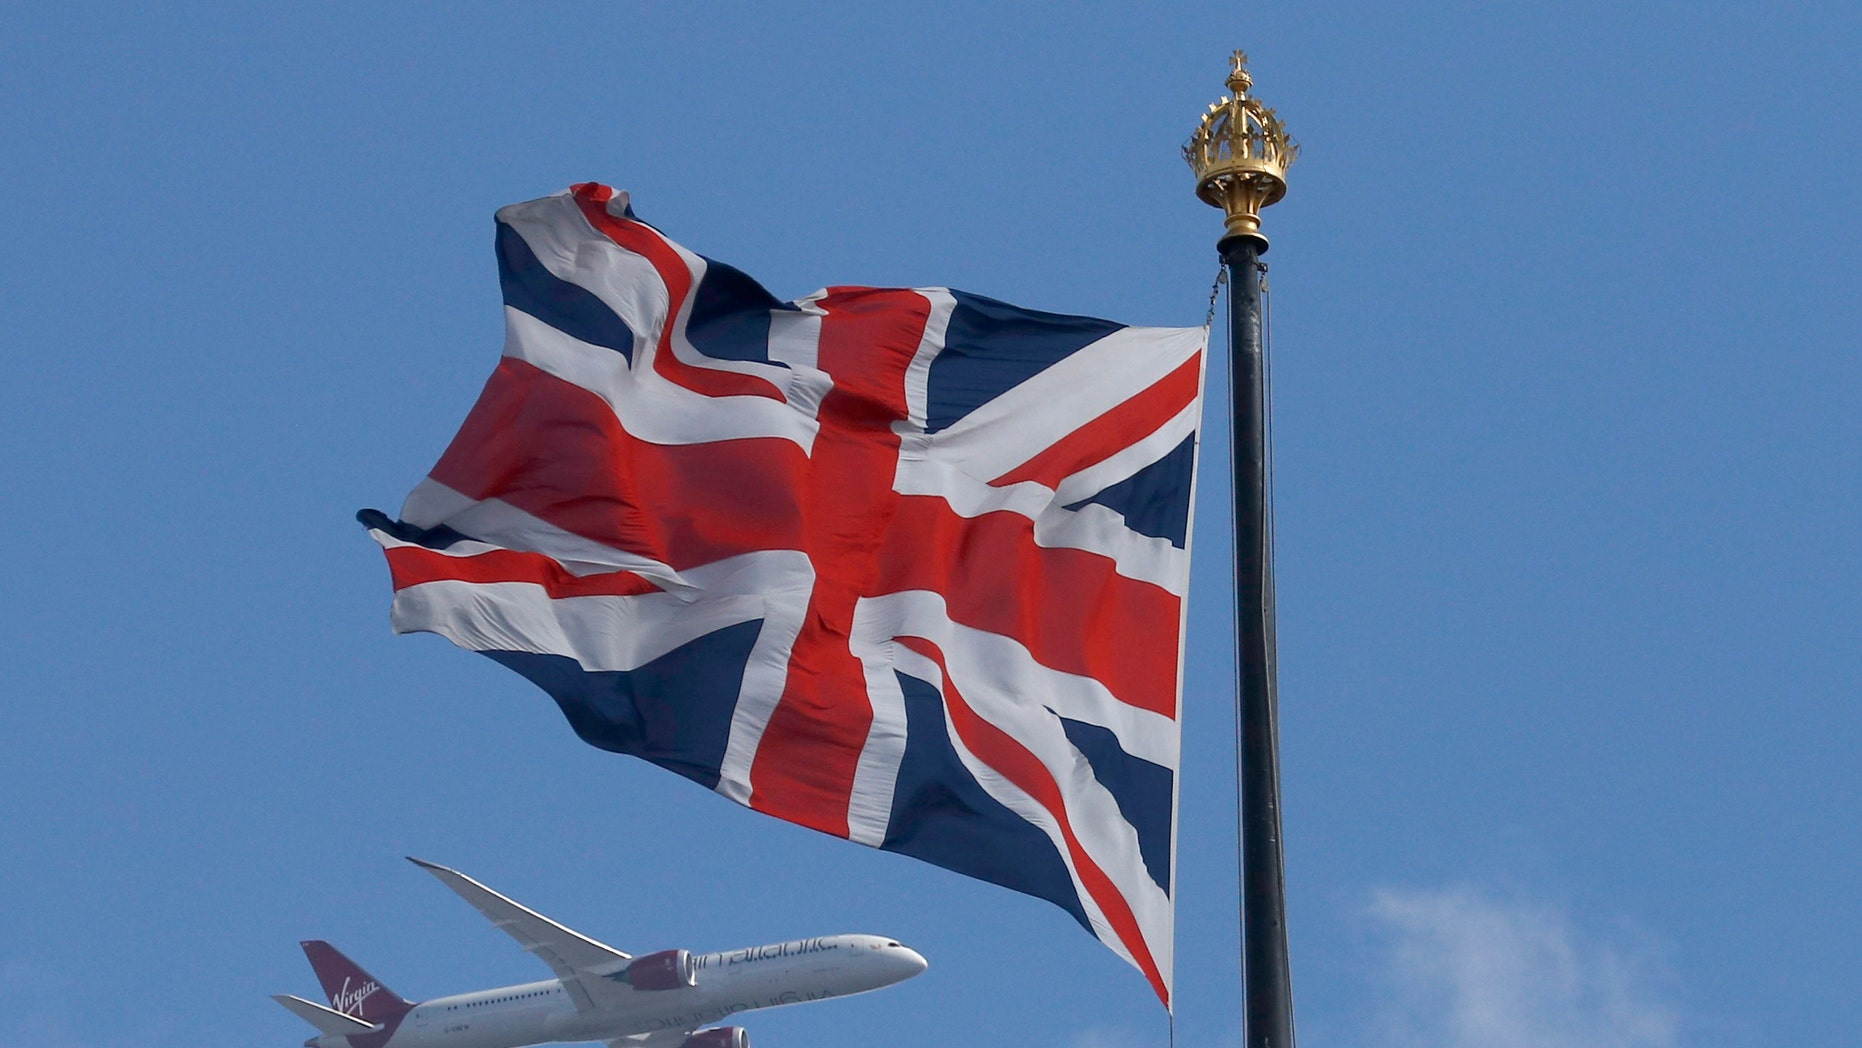 File photo - A Virgin Atlantic passenger jet flies past the Union Flag above the Houses of Parliament in Westminster, in central London, Britain June 24, 2016. (REUTERS/Phil Noble)